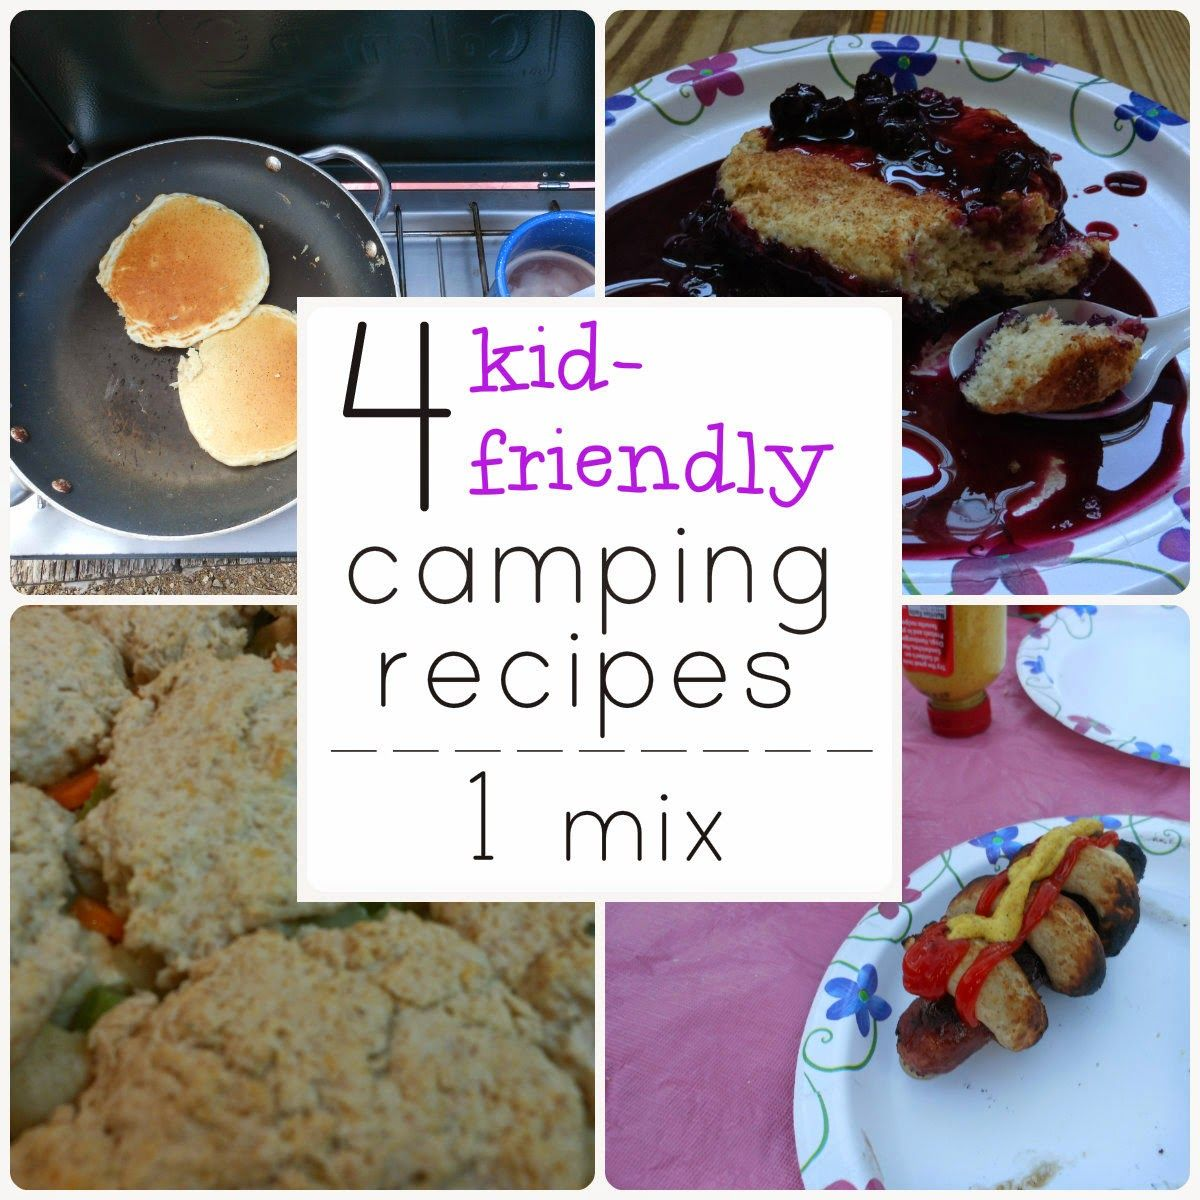 Mommy Loves Trees: 4 Kid-Friendly Camping Recipes Using 1